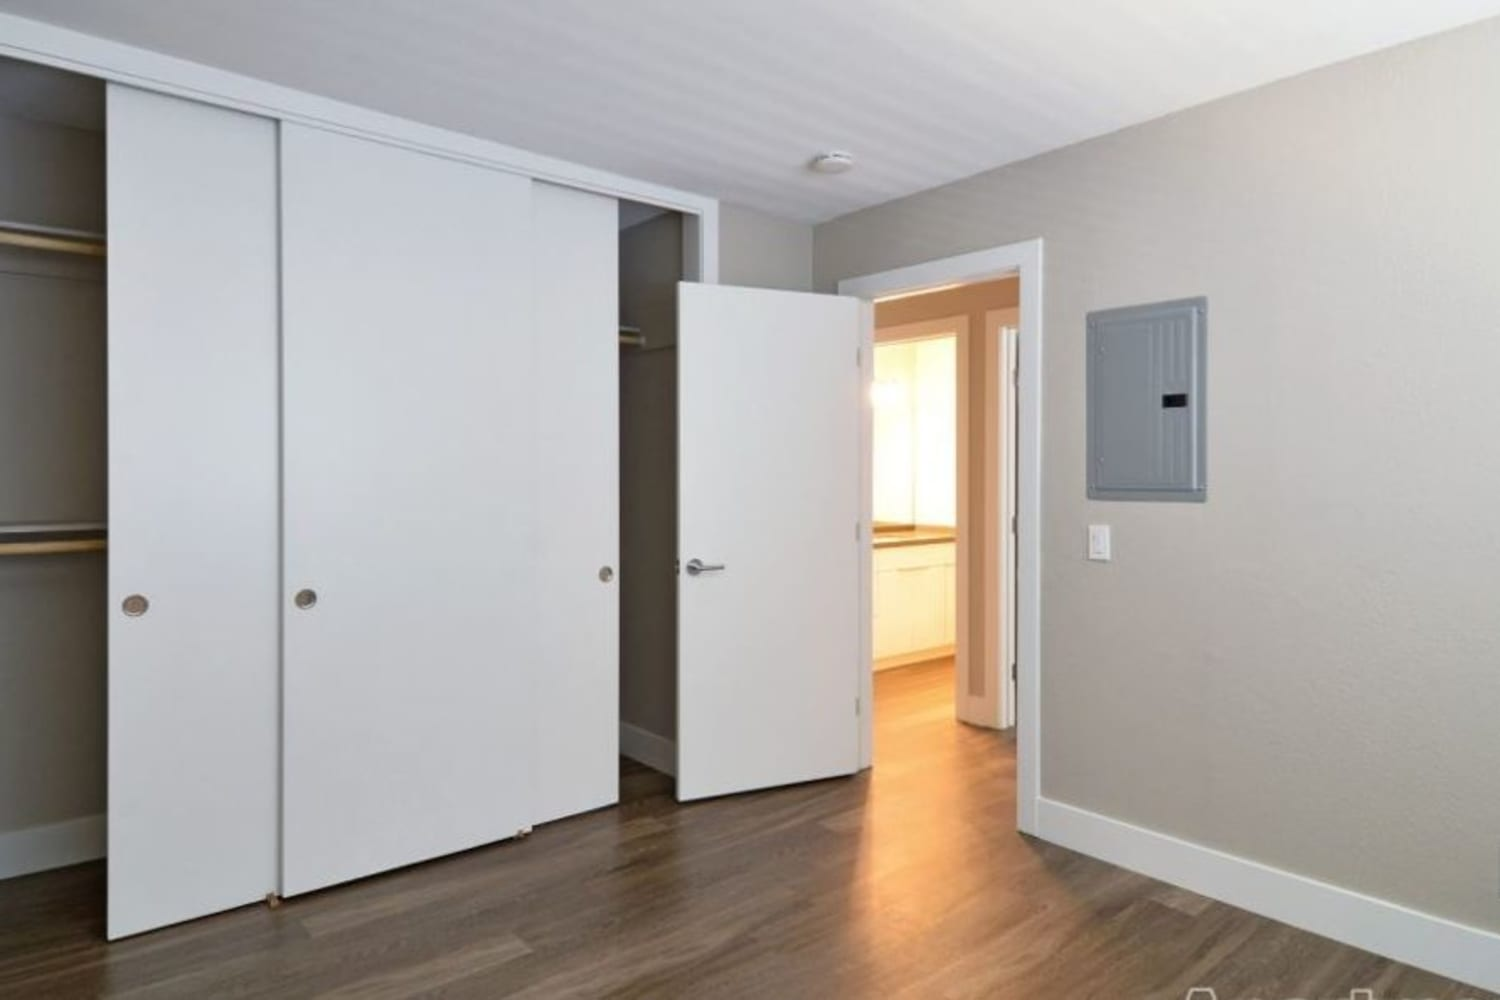 Enjoy ample closet and storage space in the apartments for rent at Harbor Cove Apartments in Foster City, California